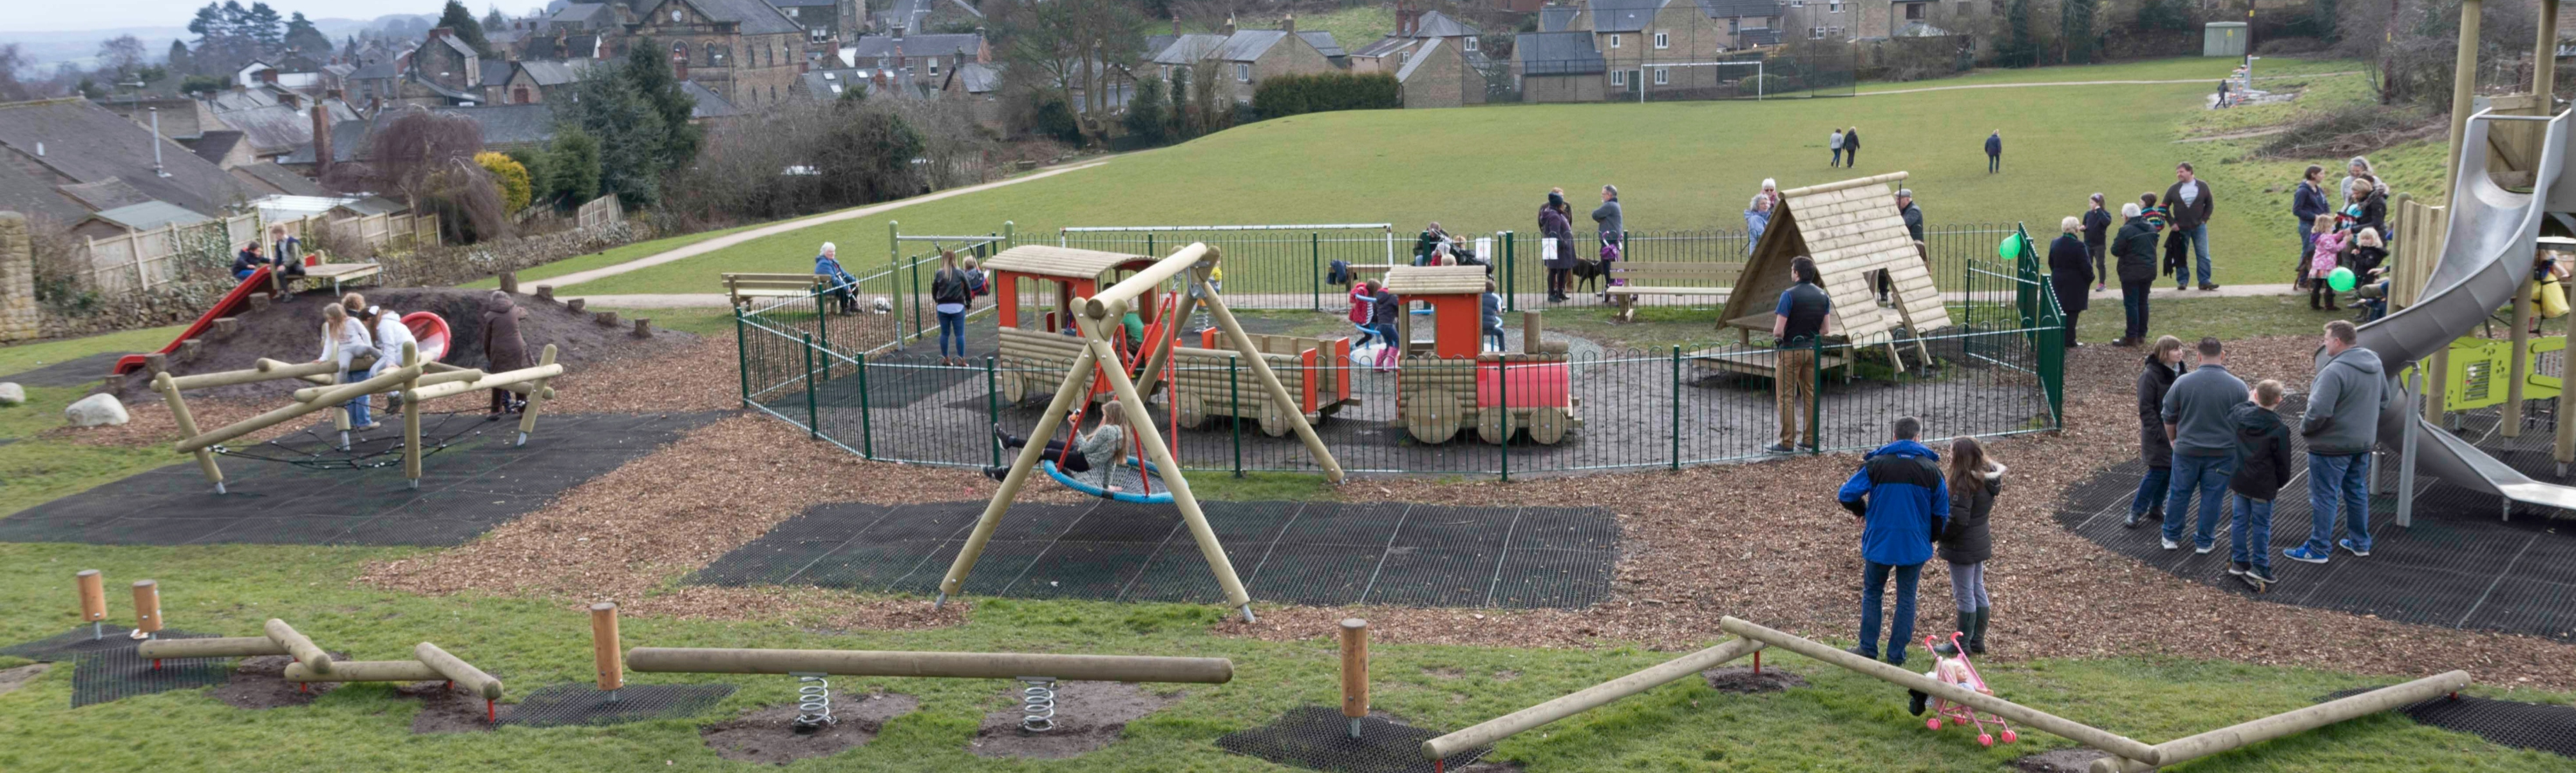 Play area in Crich Recreation Ground by Paul Yorke